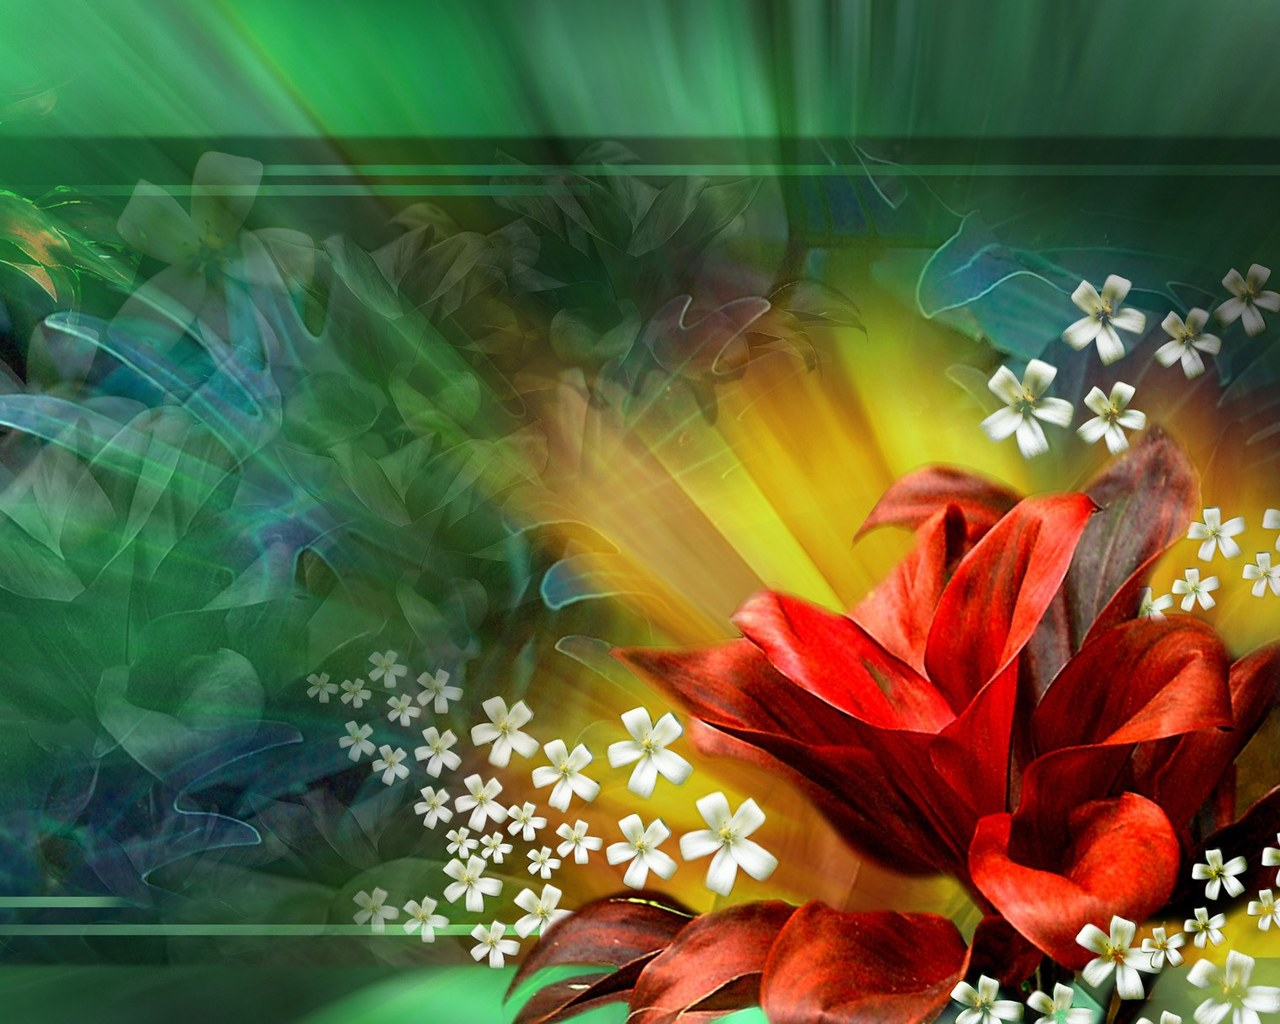 Widescreen wallpapers free - Widescreen Wallpapers Free Download -